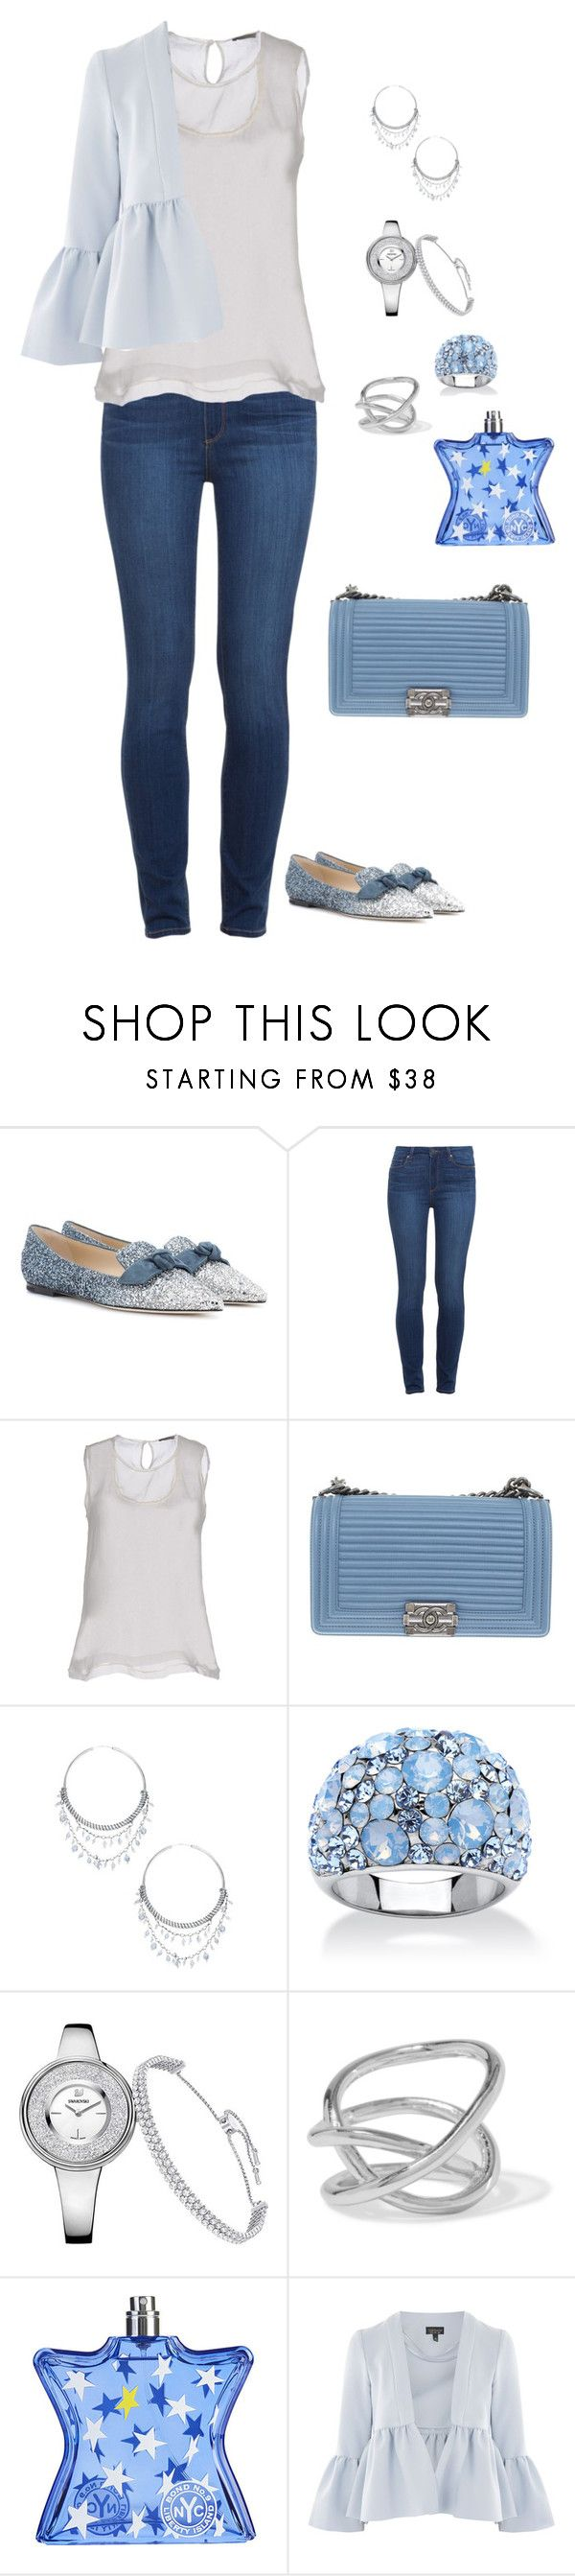 """The Blues"" by lalalace-1 ❤ liked on Polyvore featuring Jimmy Choo, Paige Denim, Bottega Veneta, Chanel, Chan Luu, Palm Beach Jewelry, Jennifer Fisher, Bond No. 9 and Topshop"